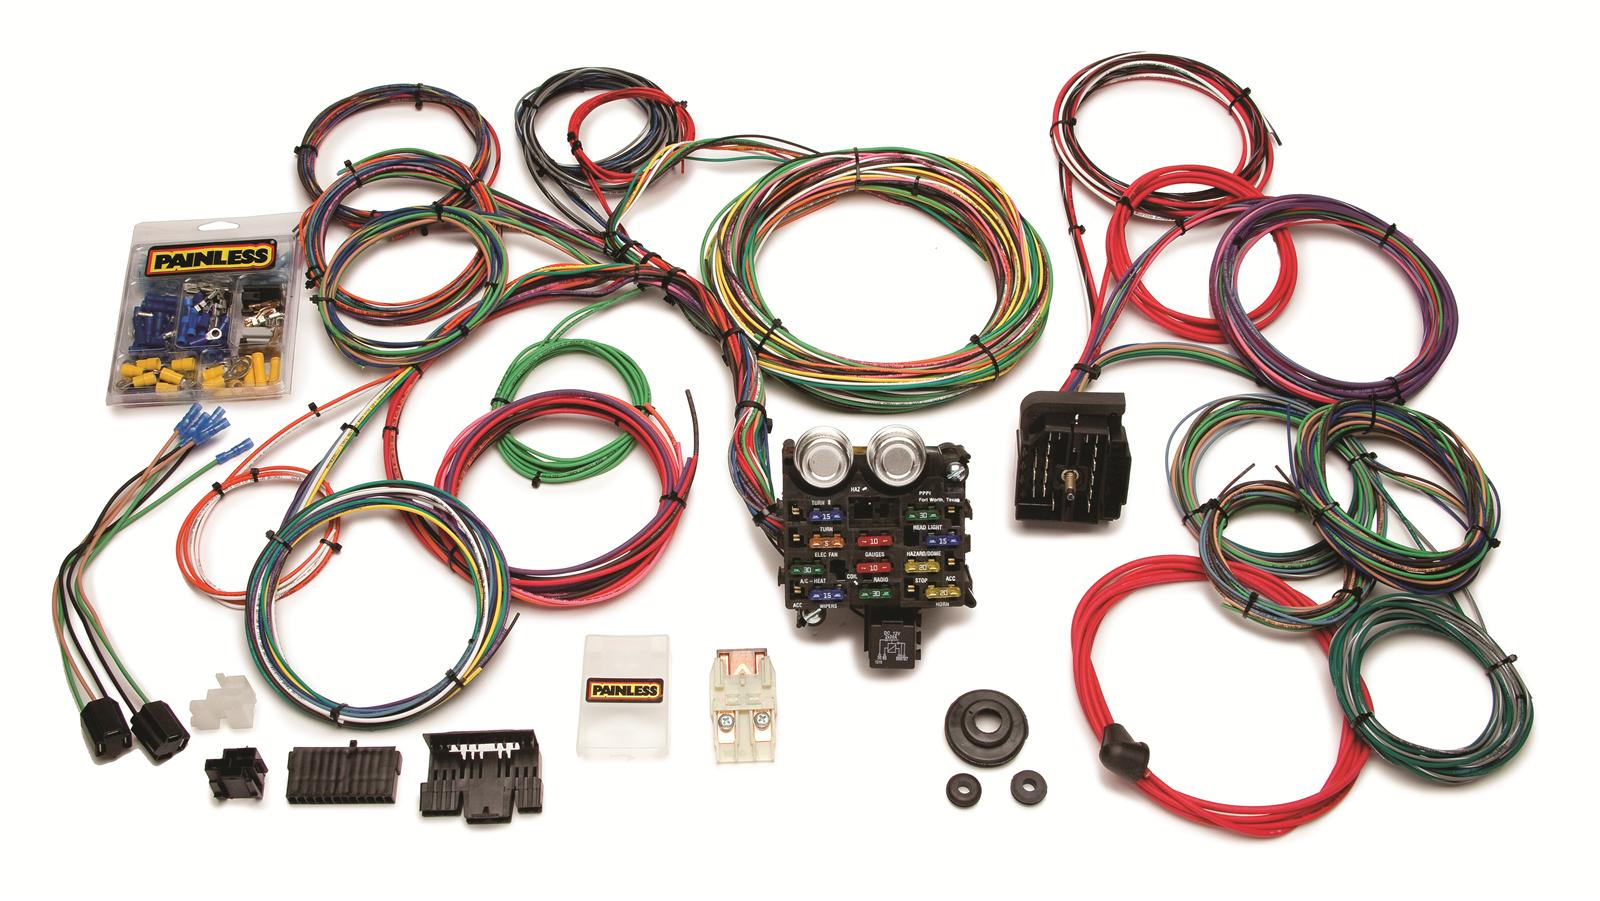 hight resolution of wrg 1887 12 circuit painless wiring harness 20103 1981 flh wiring diagram